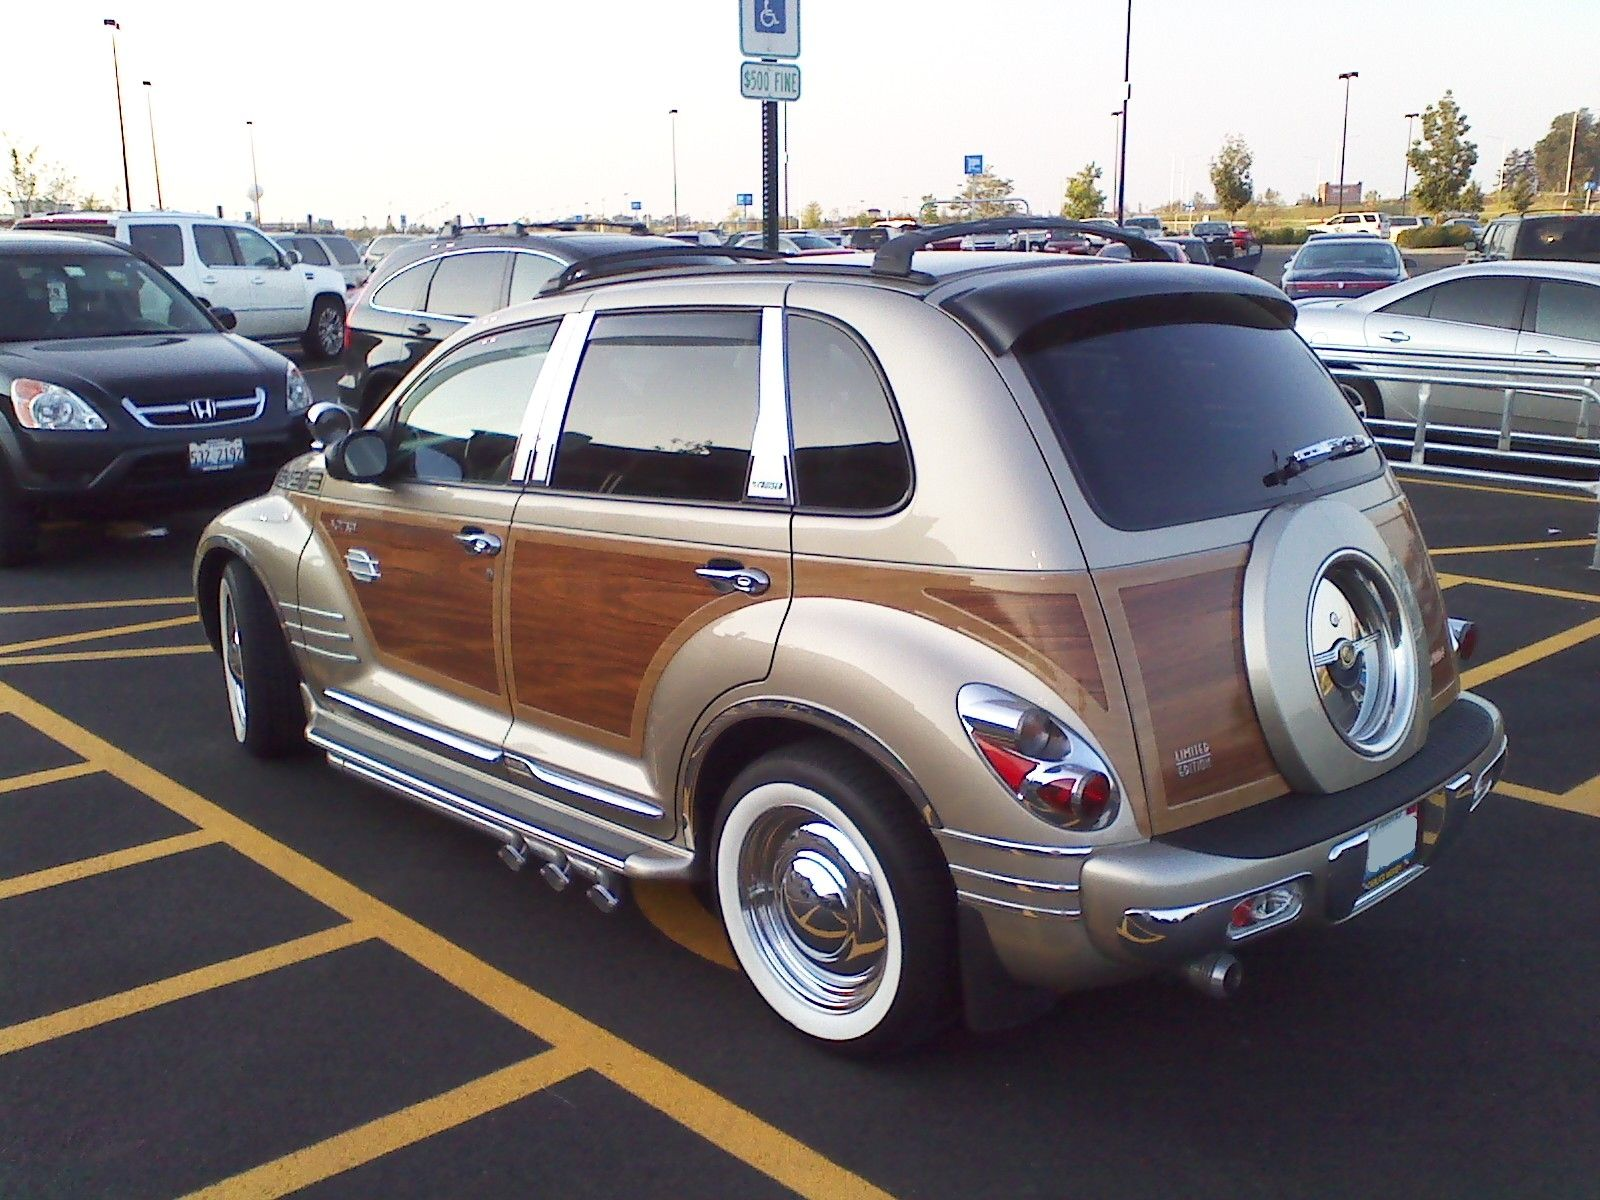 custom pt cruiser View photo of Custom Chrysler PT